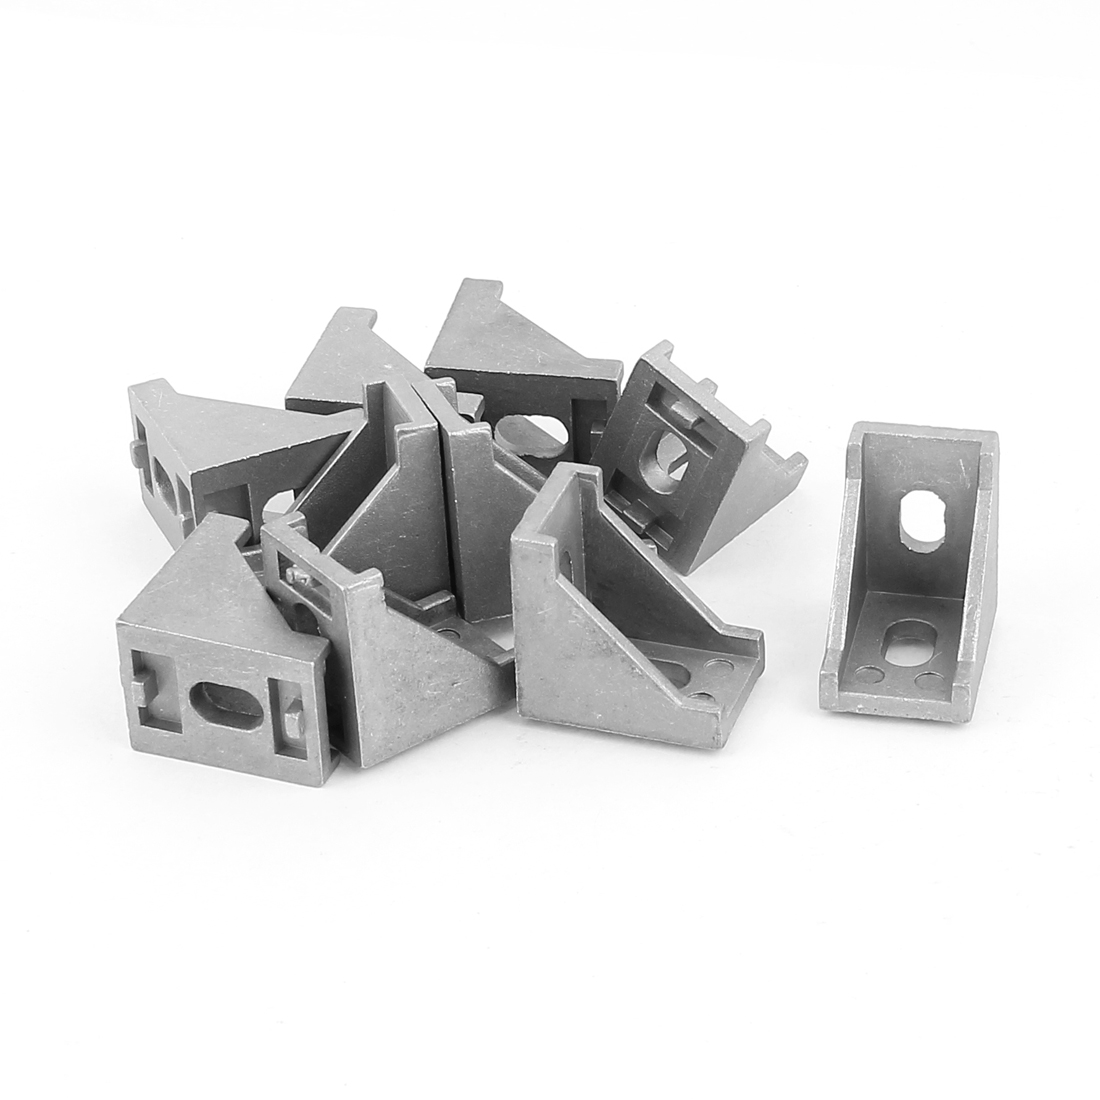 30x30x20mm 90 Degree Furniture Alloy Door Angle Bracket 10 Pcs Silver Grey